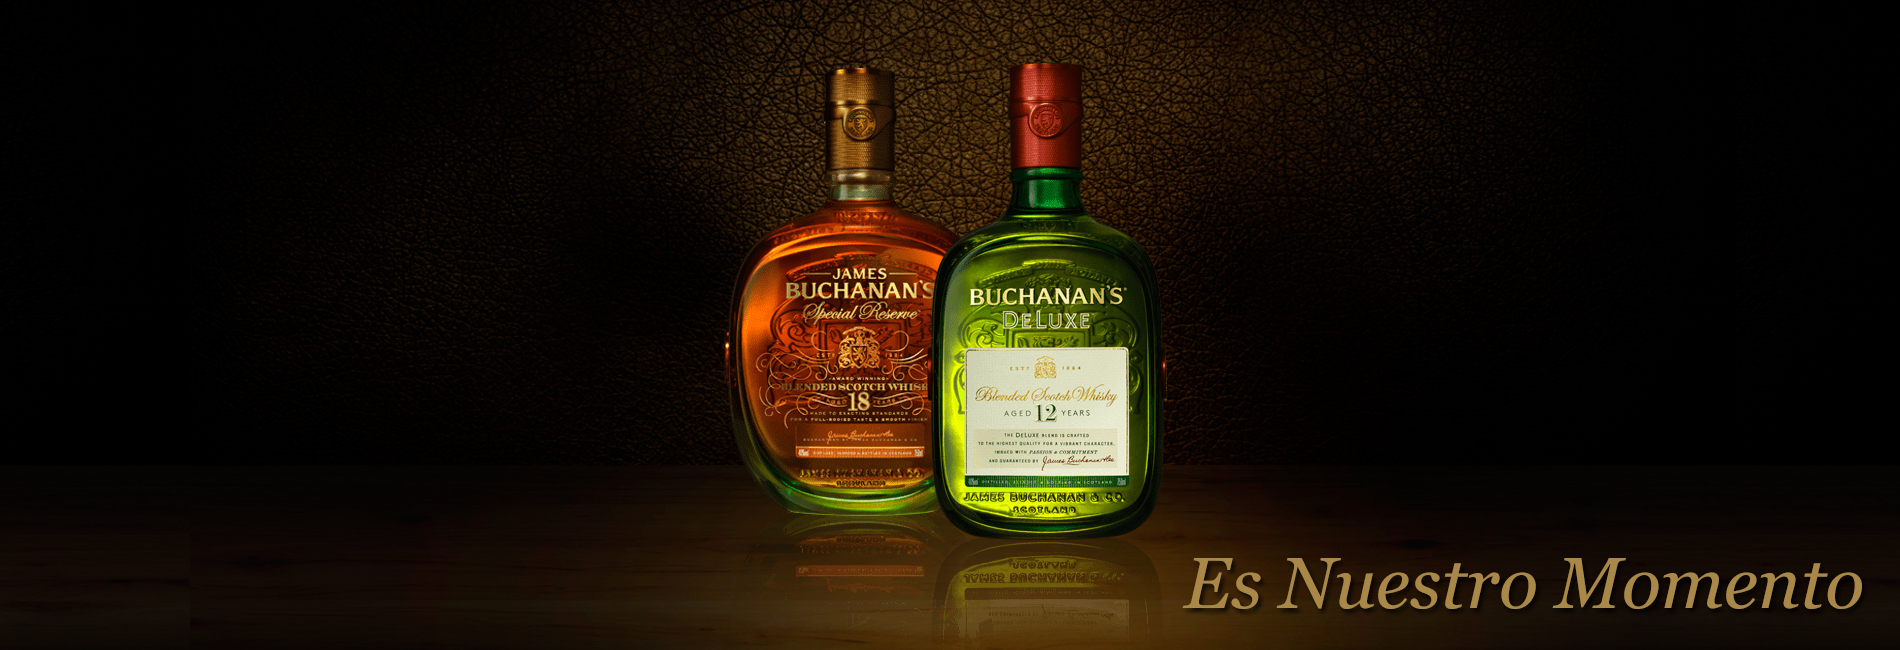 buchanans-blended-scotch-whisky-launches-new-es-nuestro-momento-campaign-null-hr